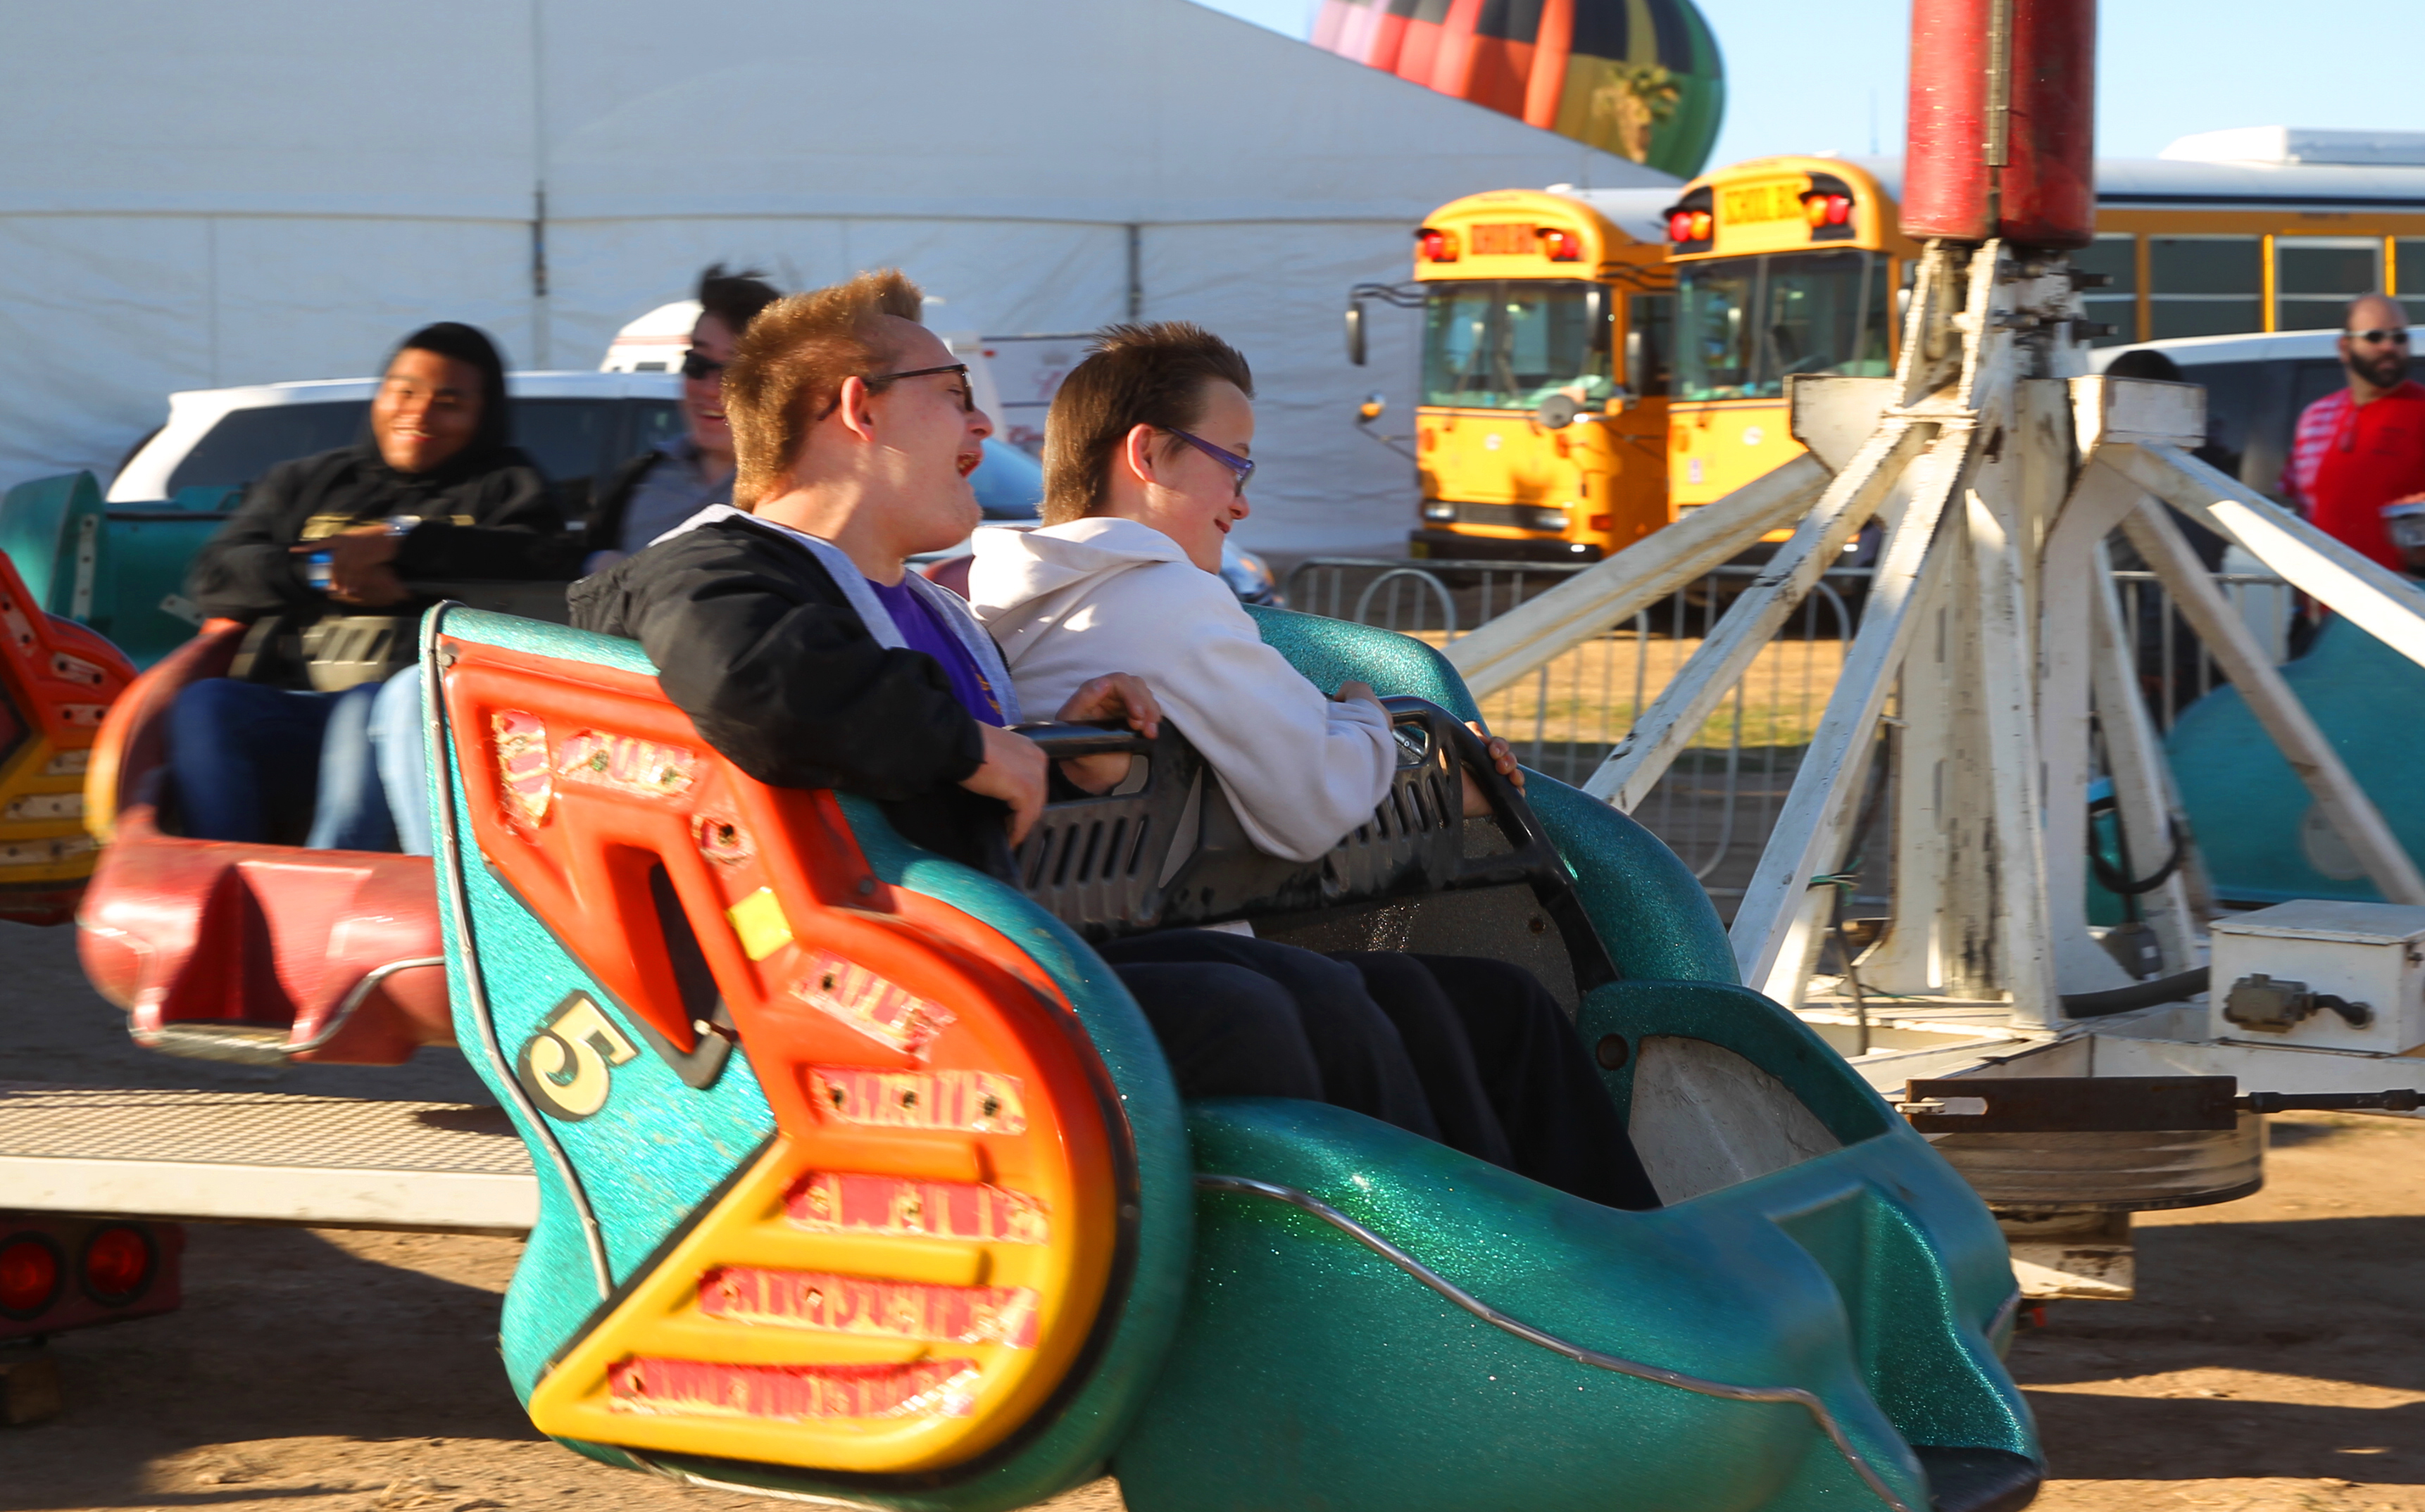 Special Pairing At Balloon Fest, Students Enjoy Carnival Day